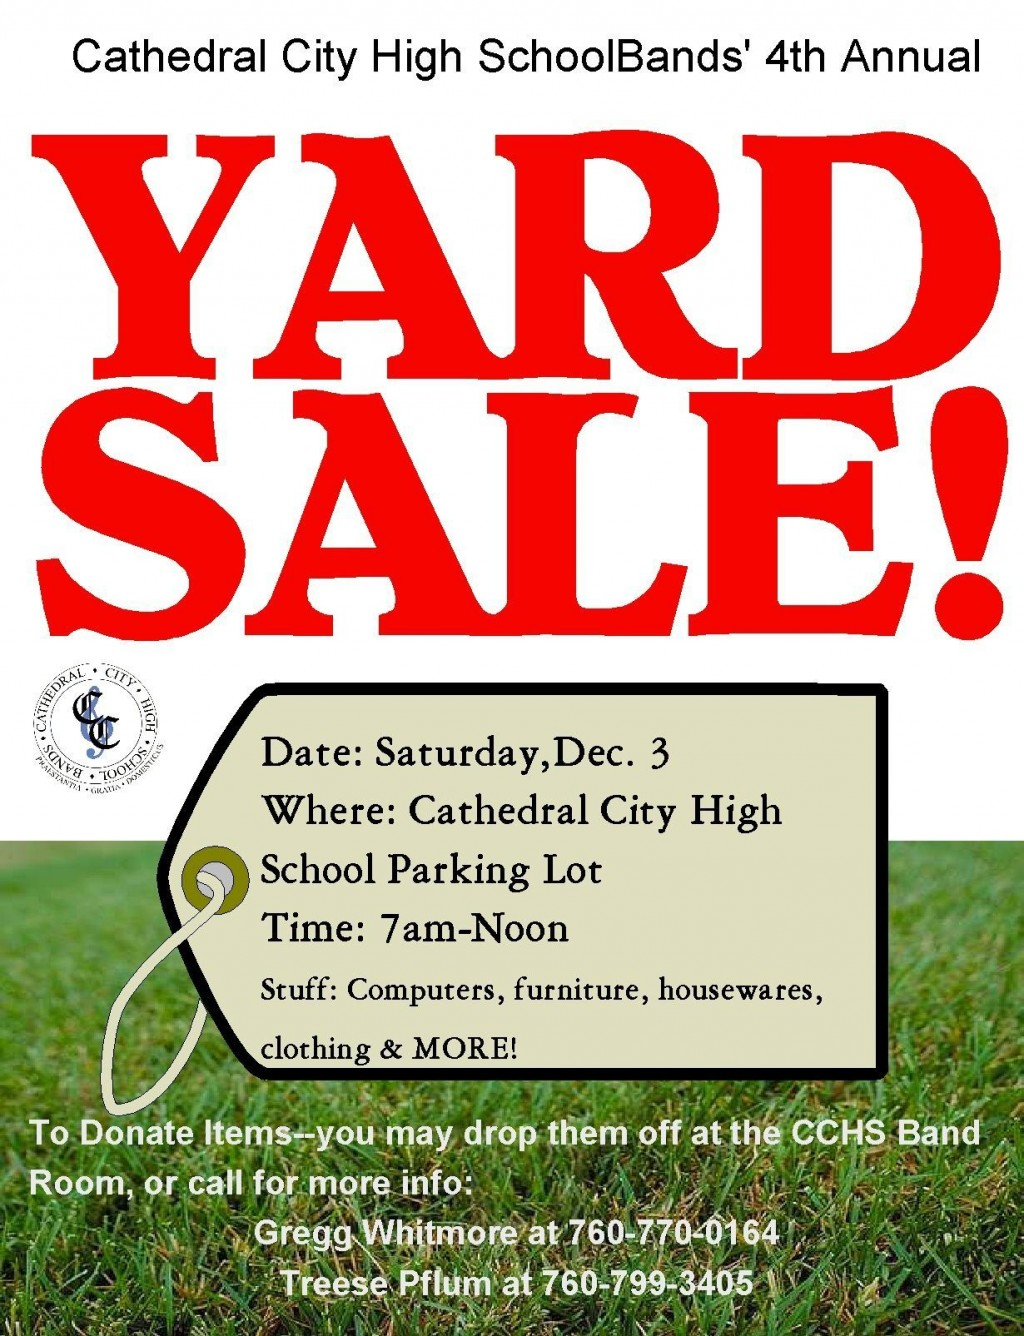 008 Best Yard Sale Flyer Template Free Picture  Community GarageLarge